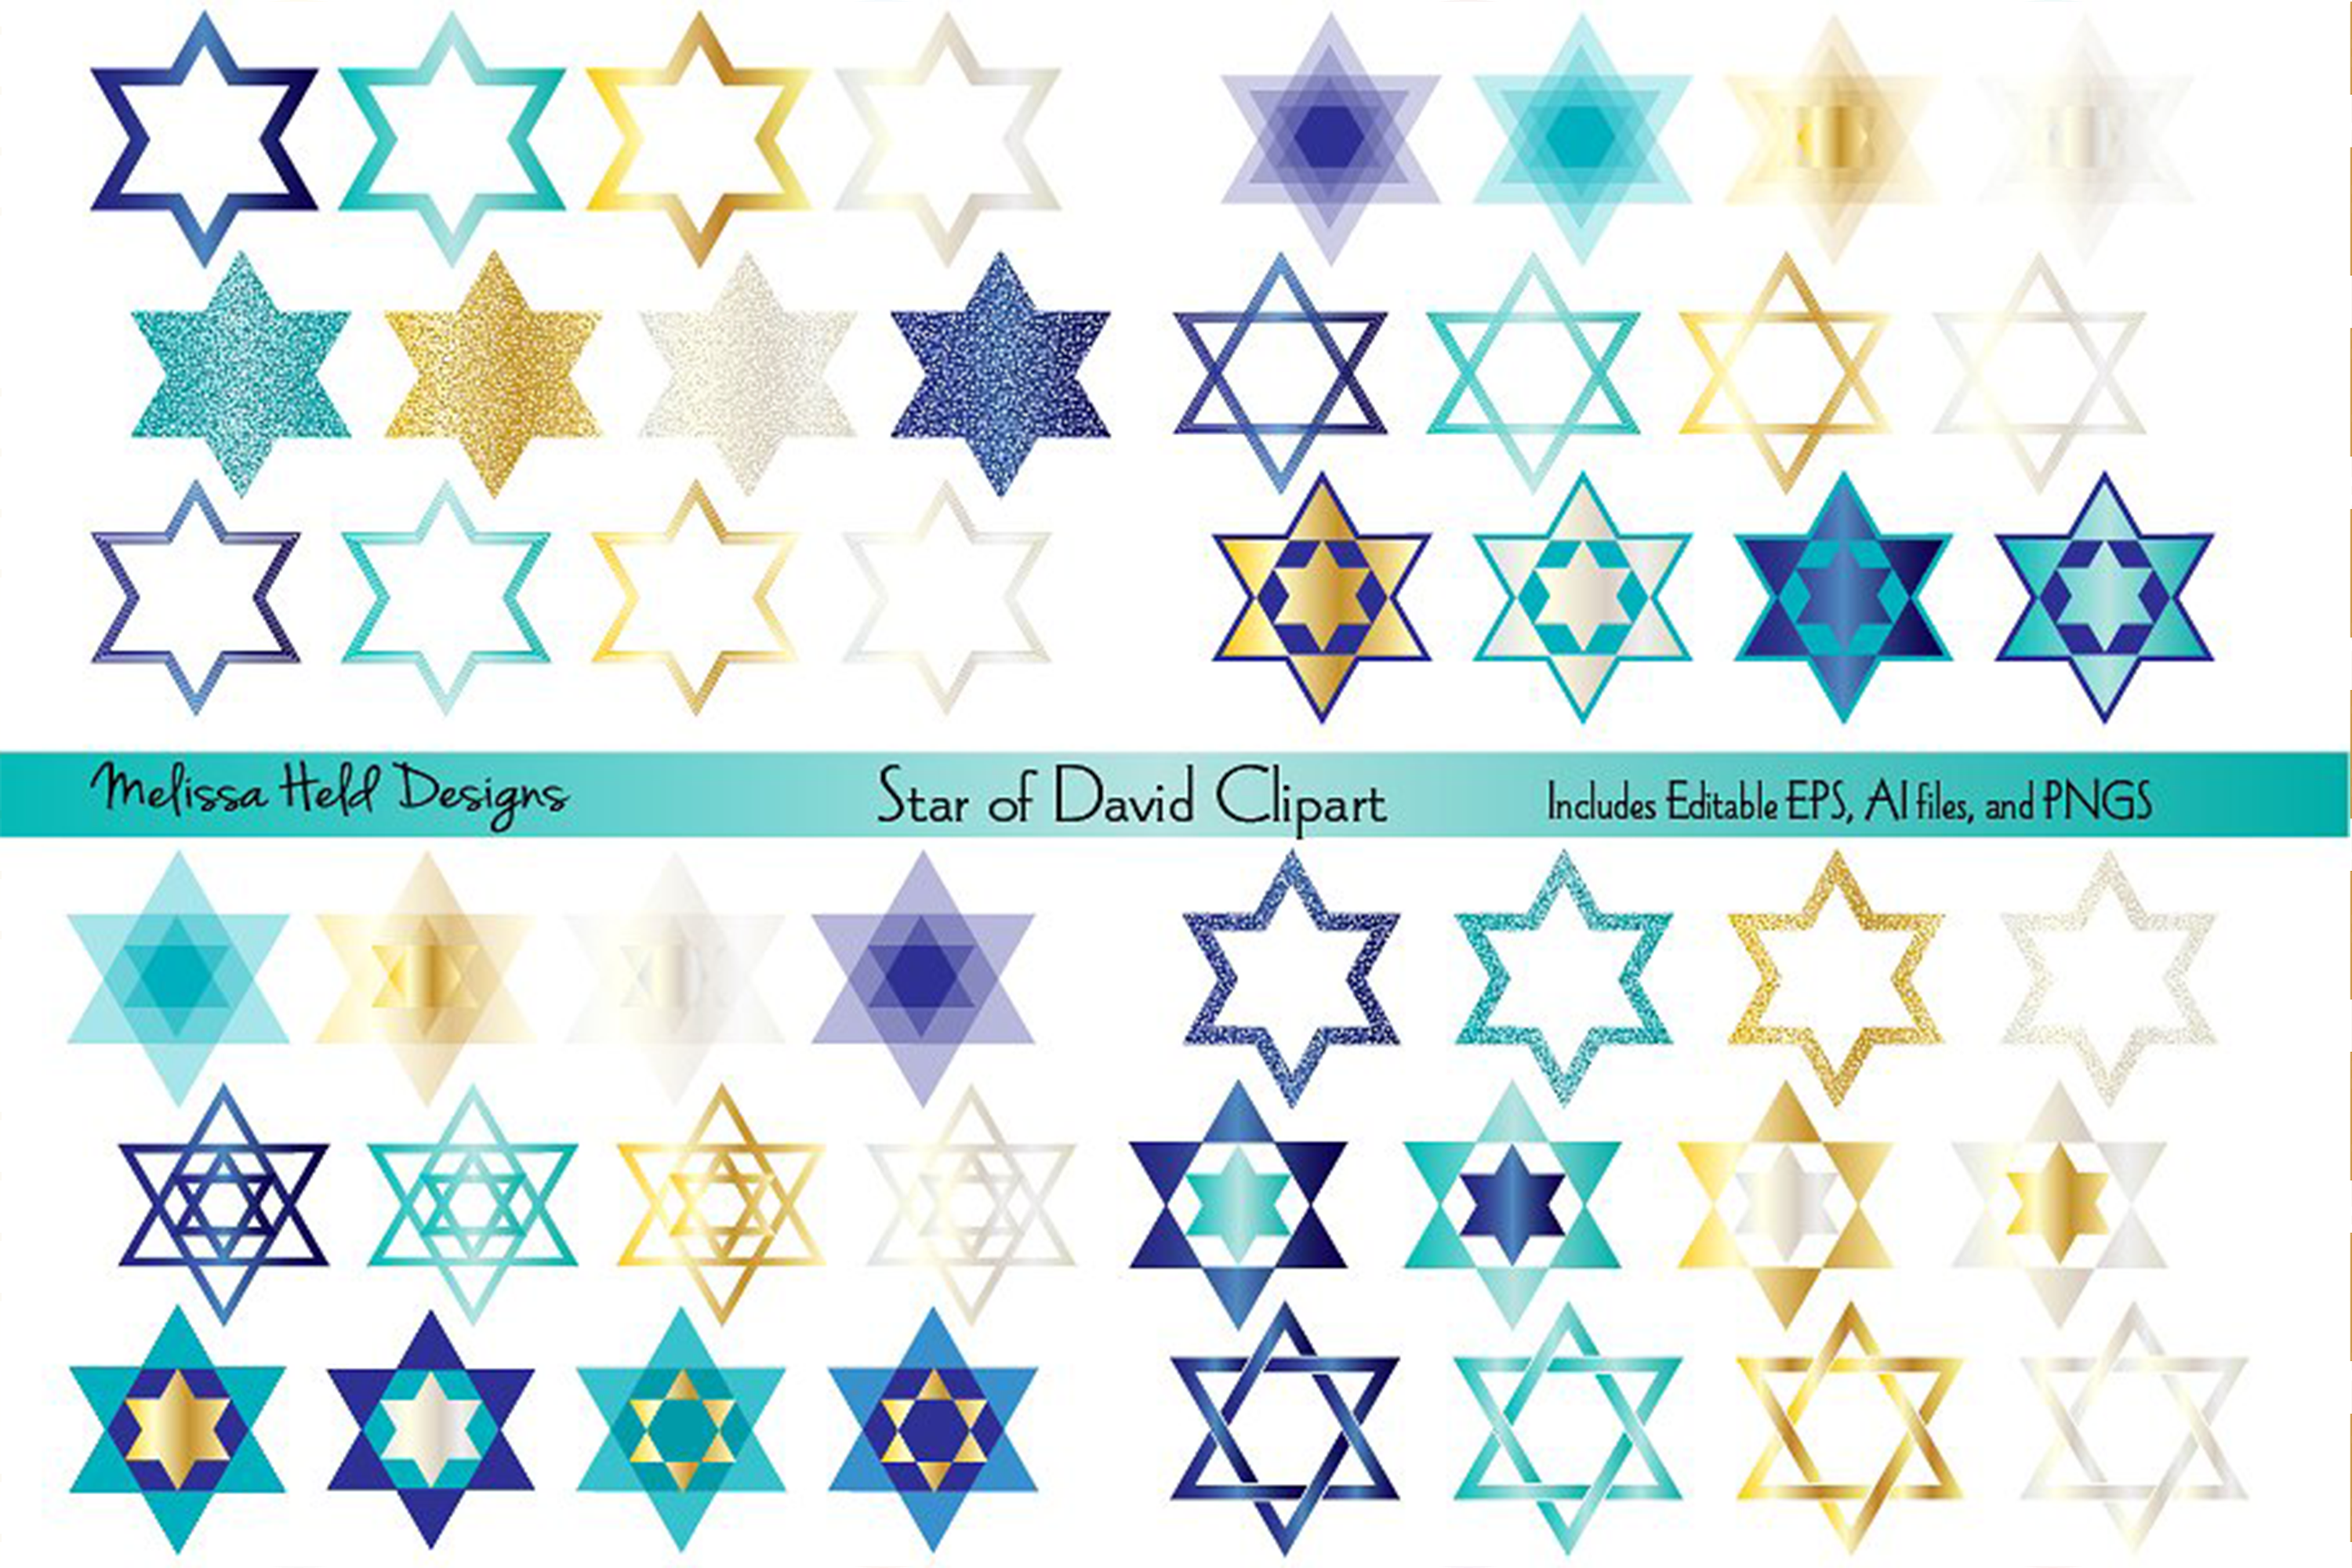 Star of David Clipart example image 1